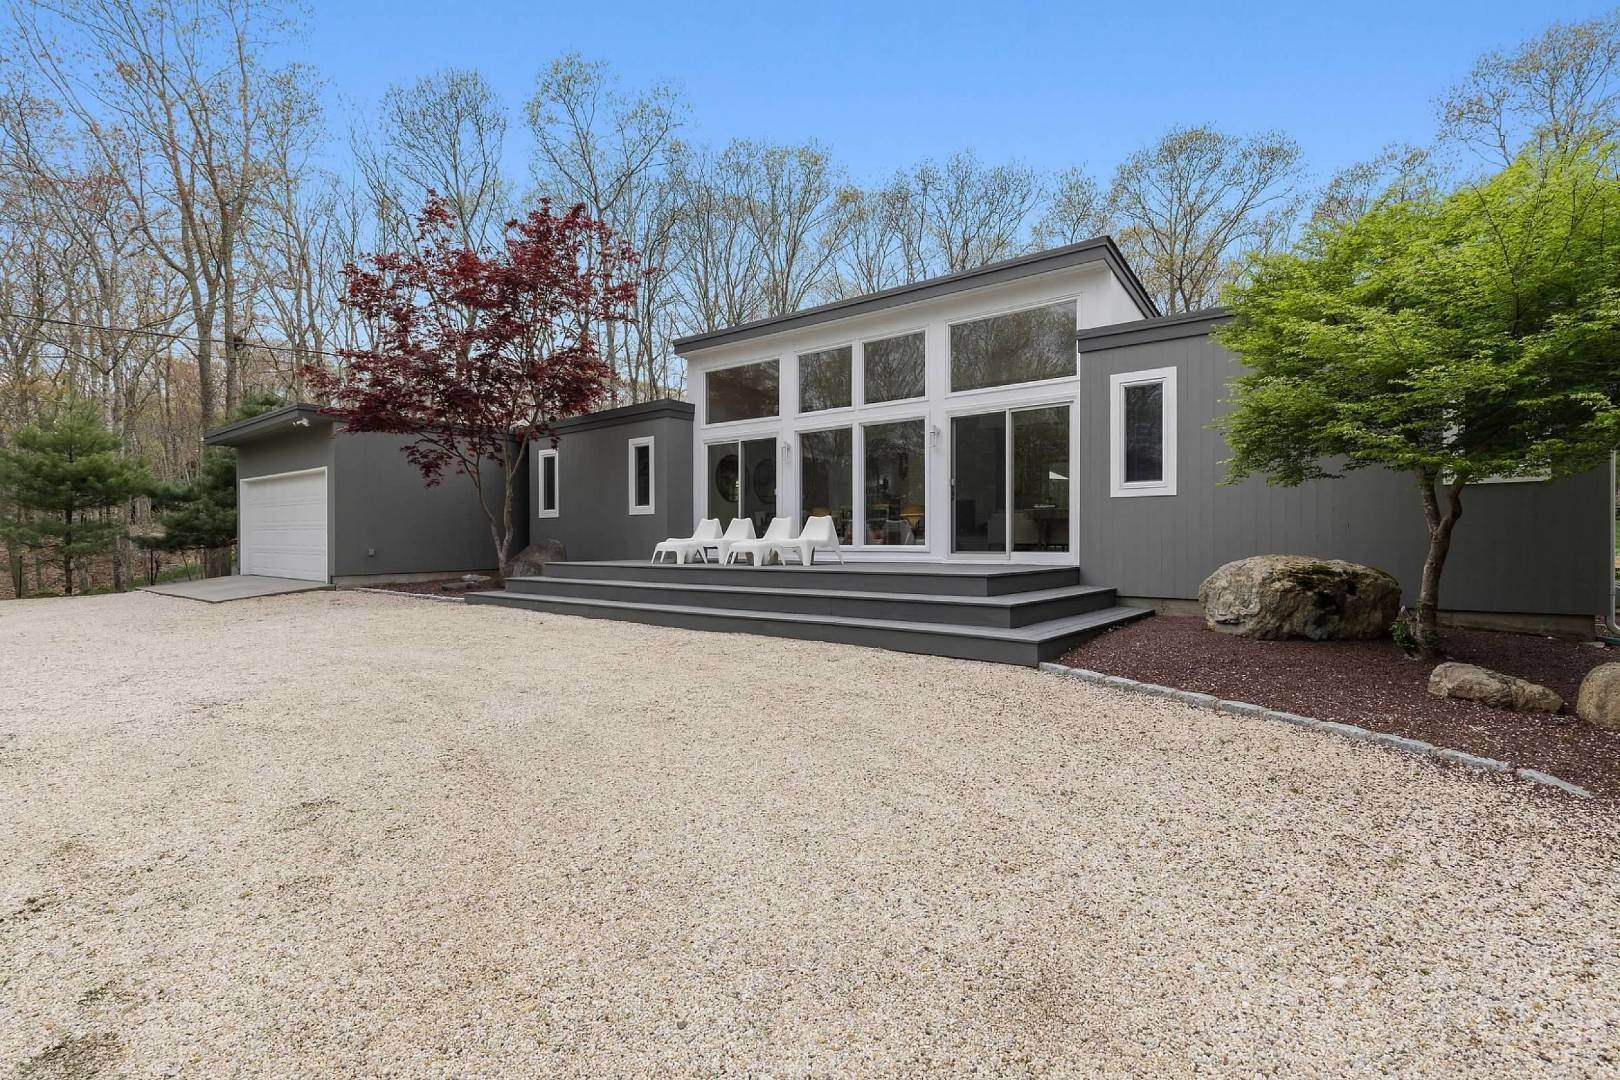 Single Family Home for Sale at Bridgehampton 1+ Acre With Pool & Room To Expand 389 Brick Kiln Road, Bridgehampton, NY 11932